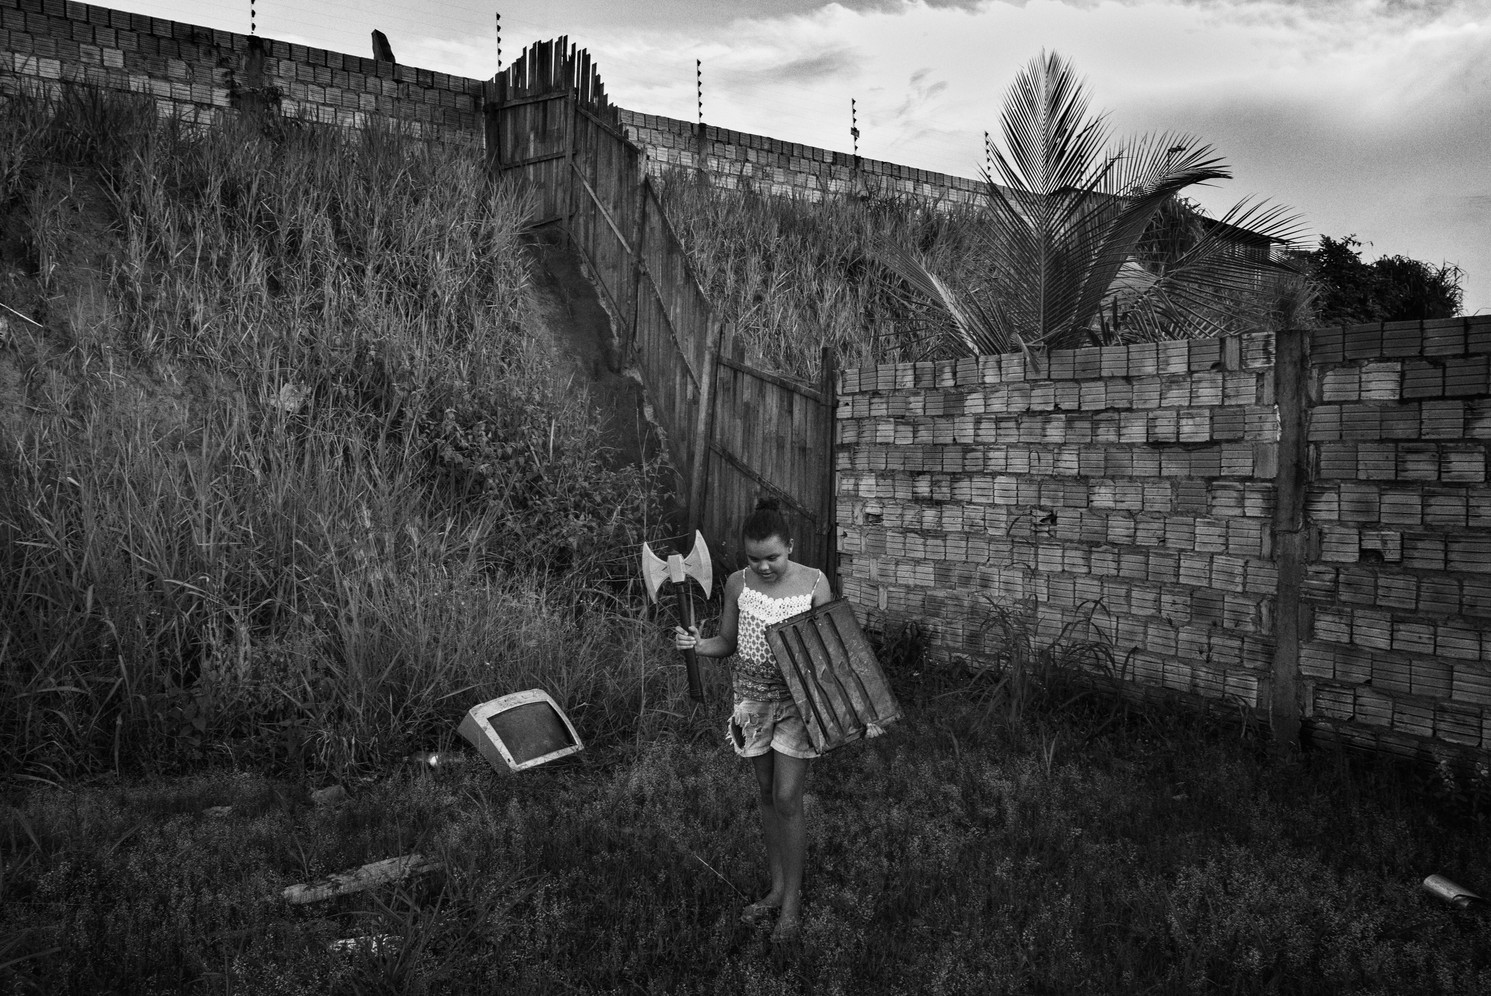 A girl plays in the Jatobá neighbourhood in Altamira, Pará state. Most of the residents here are Ribeirinhos – Amazon River People - who were relocated from along the banks of Xingu River or from other areas of the city that flooded following the inauguration of the Belo Monte Hydroelectric Dam. The housing was provided by the dam's operator Norte Energia. Many residents complain that they have struggled to adapt to such a dramatic change in lifestyle. In 2015, Altamira was considered the most violent city in Brazil and Jatobá was one of the worst affected neighbourhoods.